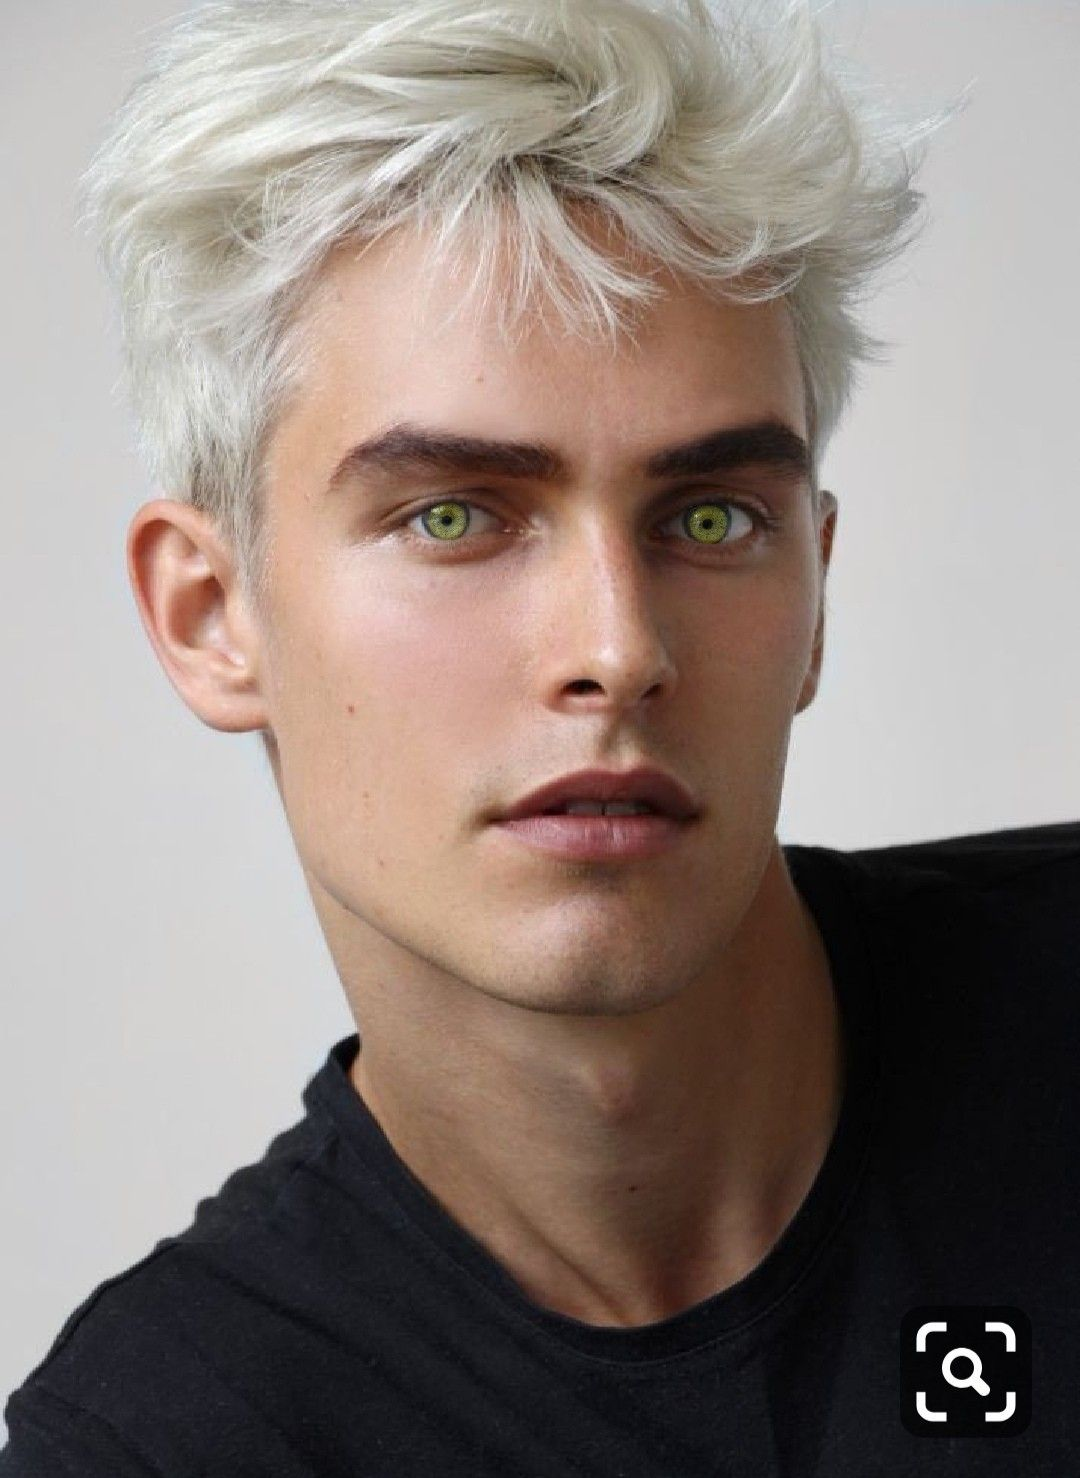 Dust Until Dawn In 2020 Men Blonde Hair Guys With Green Eyes Green Eyes Blonde Hair